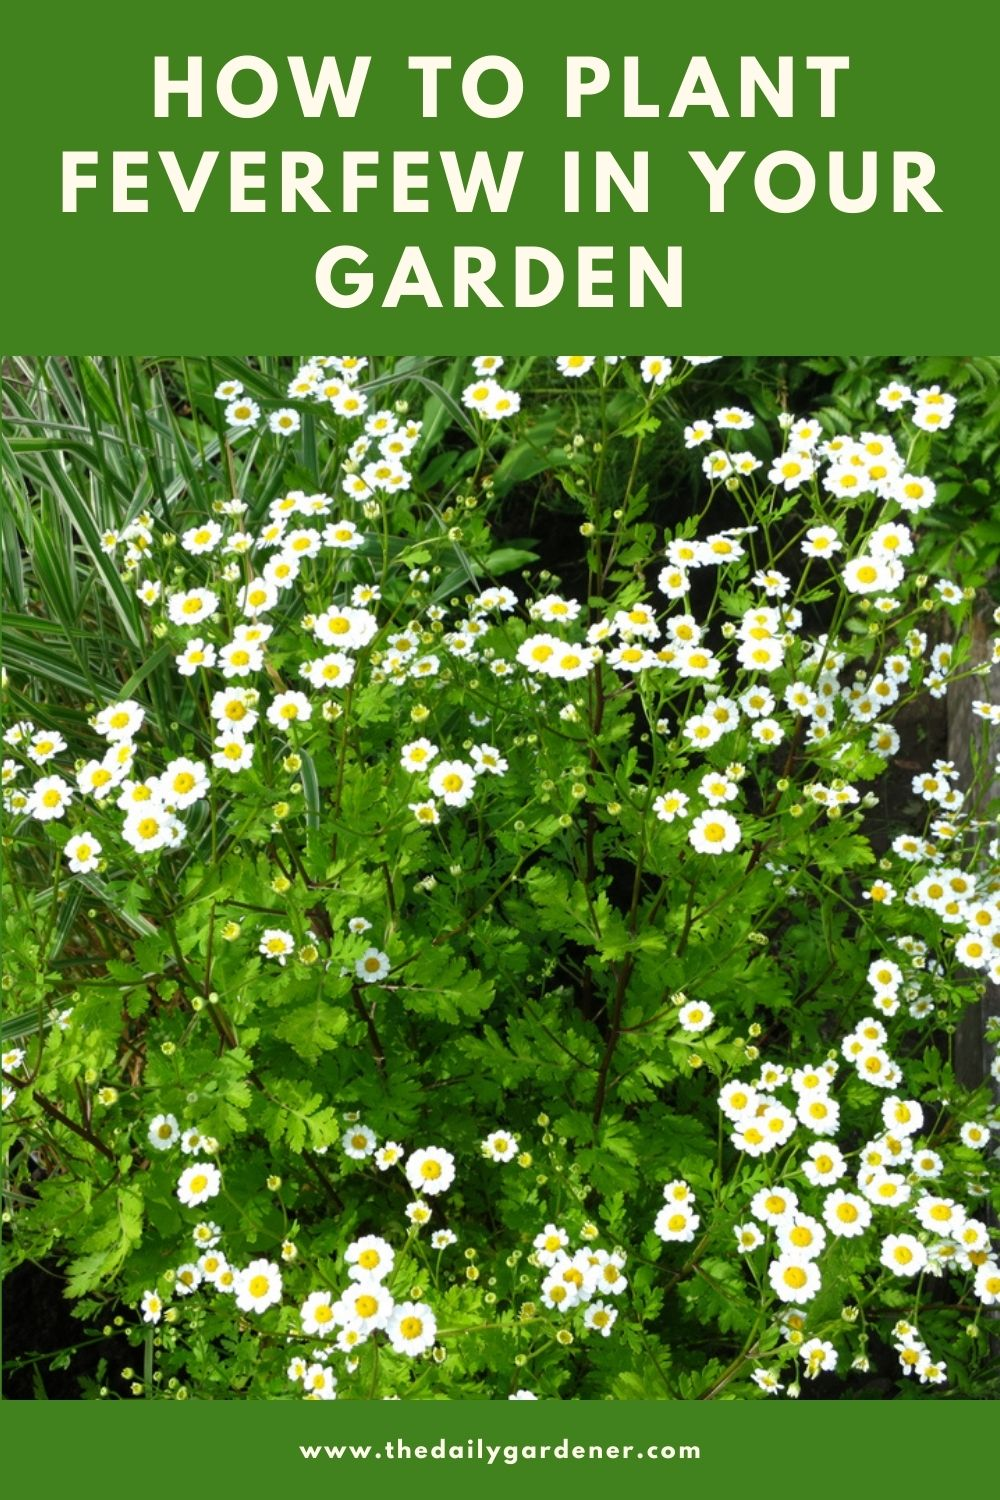 How to Plant Feverfew in Your Garden (Tricks to Care!) 2